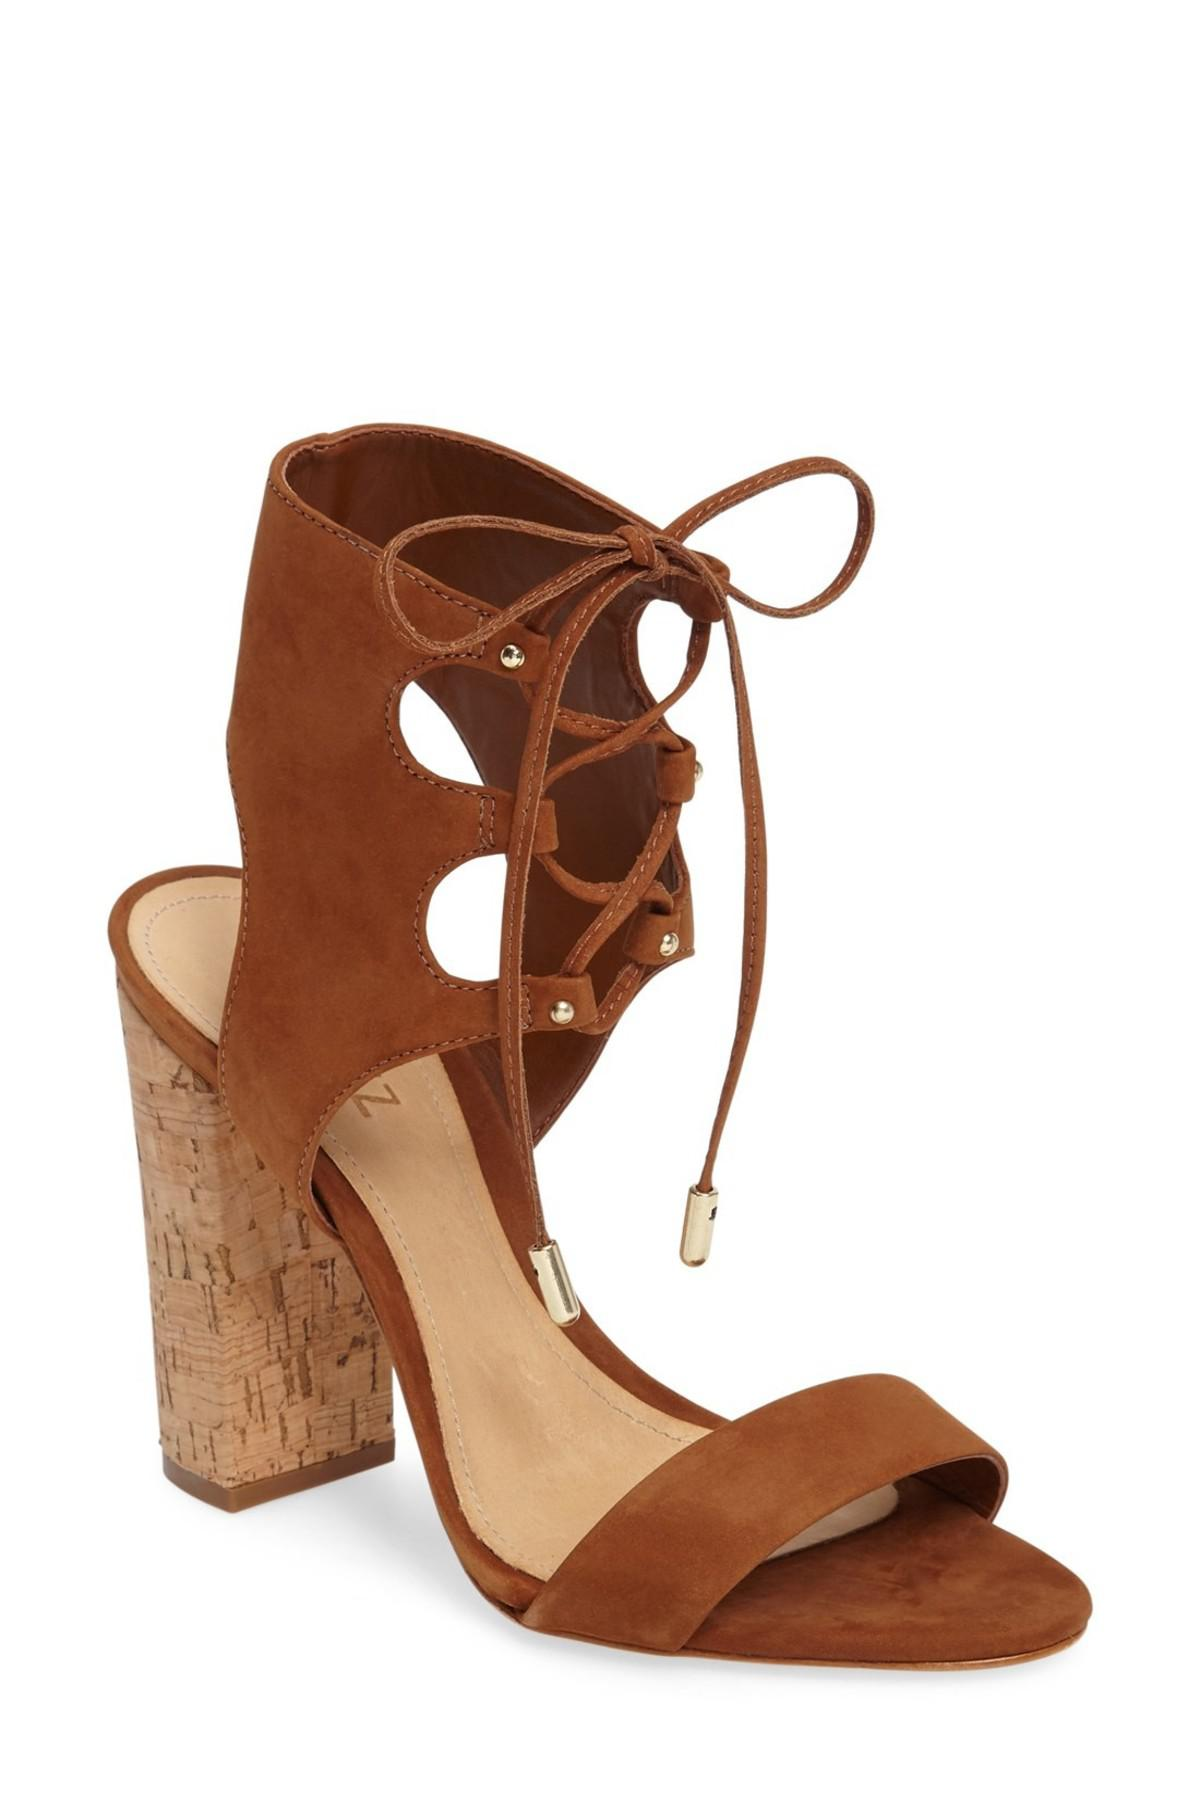 7fa73d5f5969 Lyst - Schutz Cruz Lace-up Cuff Sandal in Brown